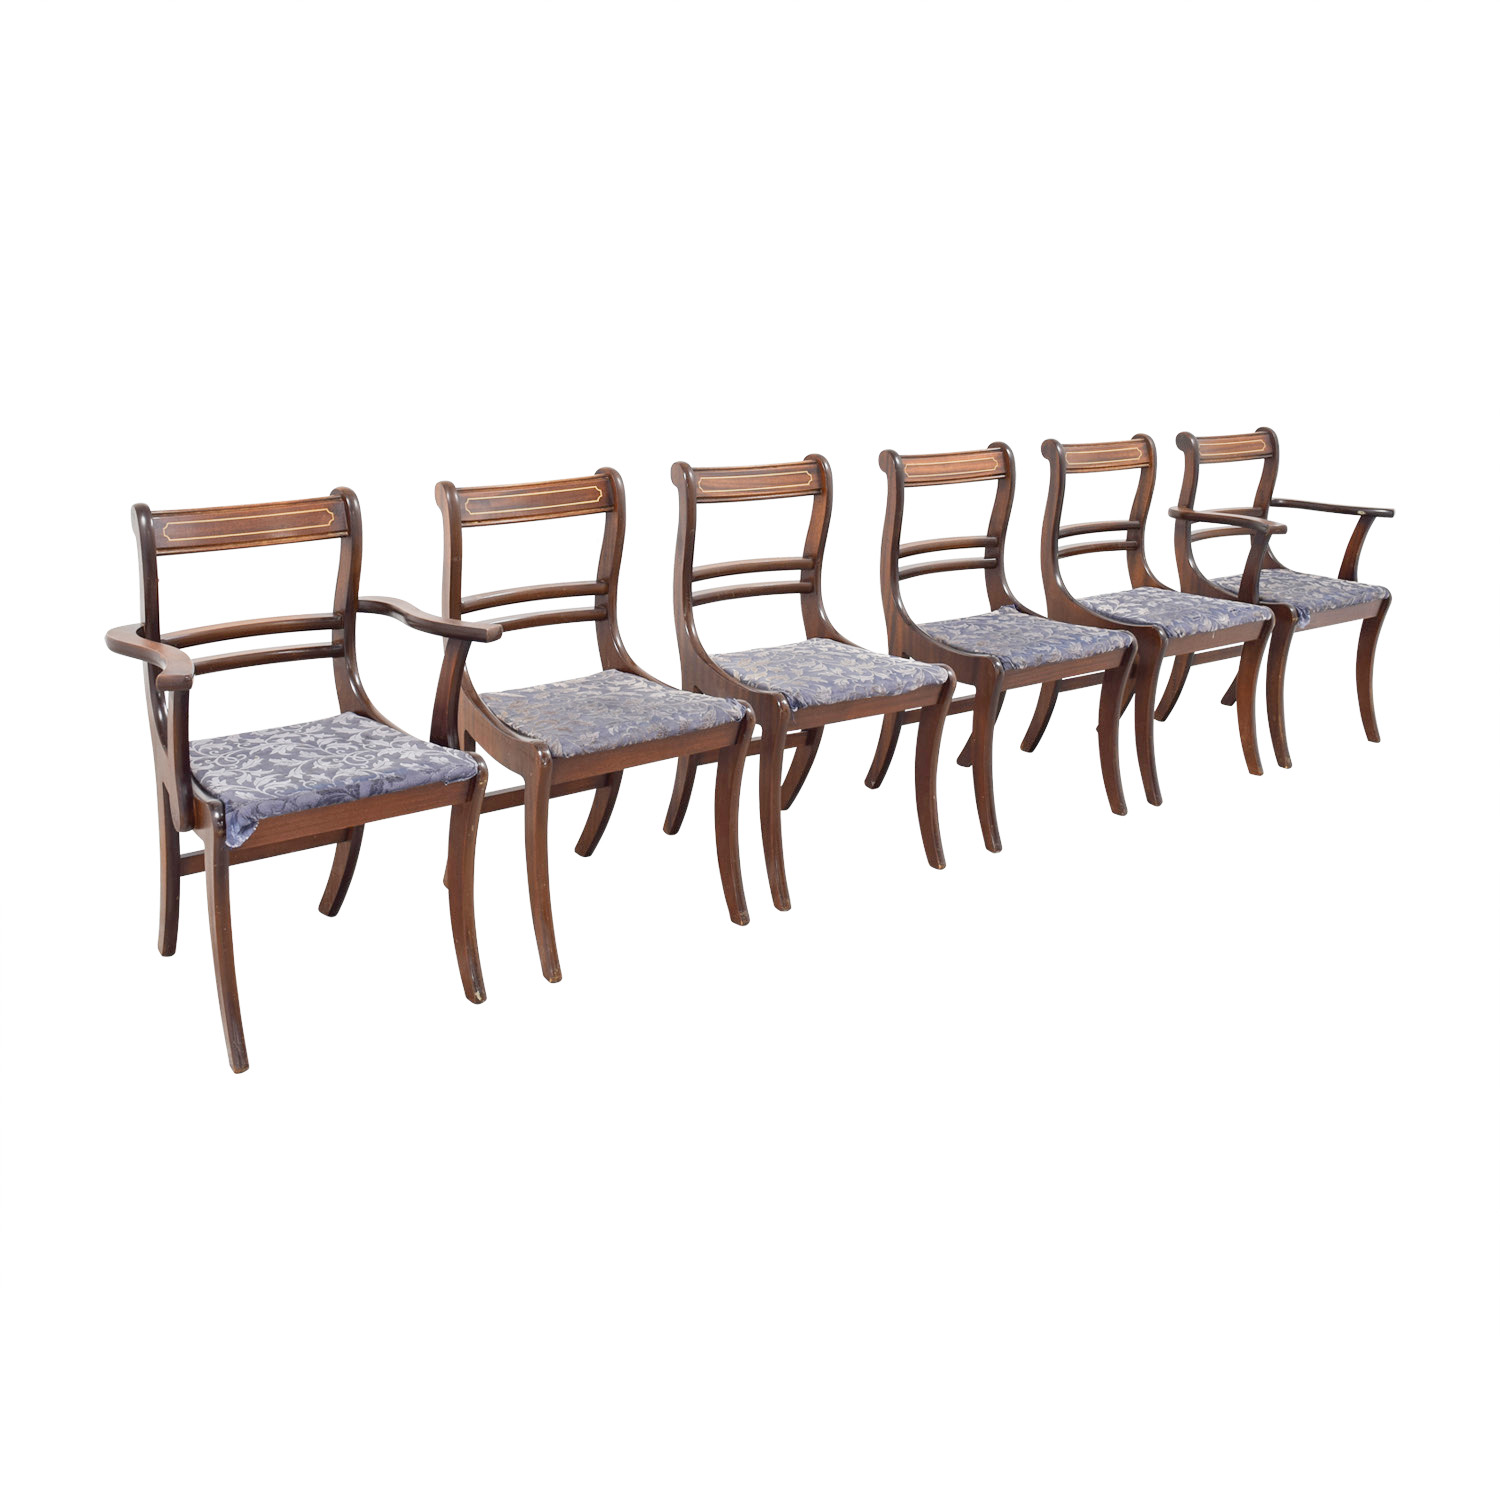 Wood Dining Chairs with Removable Blue Cushions sale